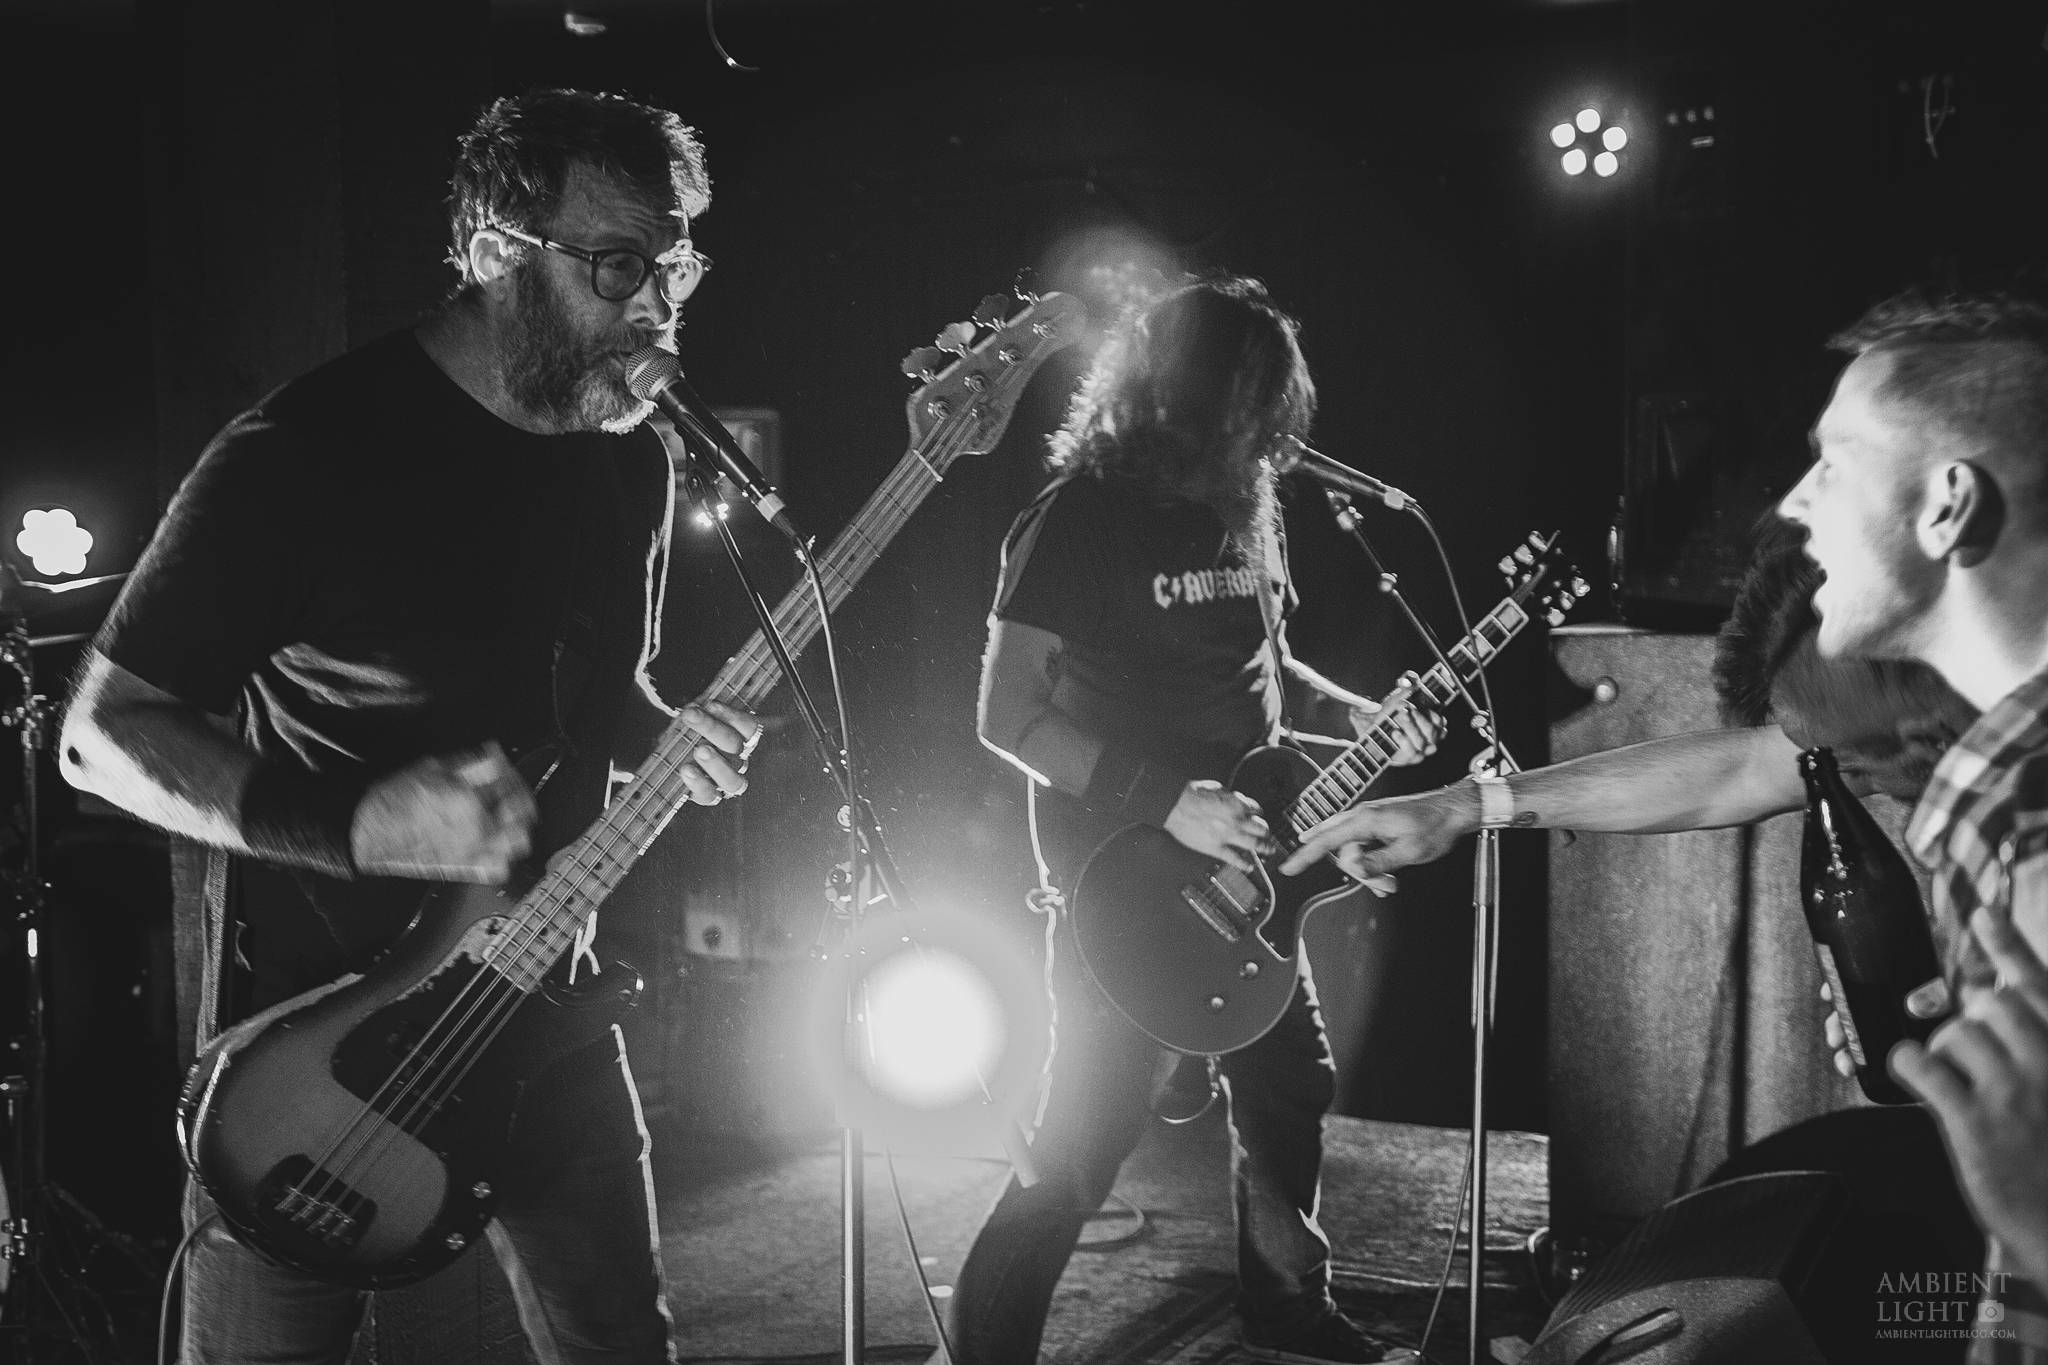 Concert Review - Red Fang, Auckland New Zealand, 2018